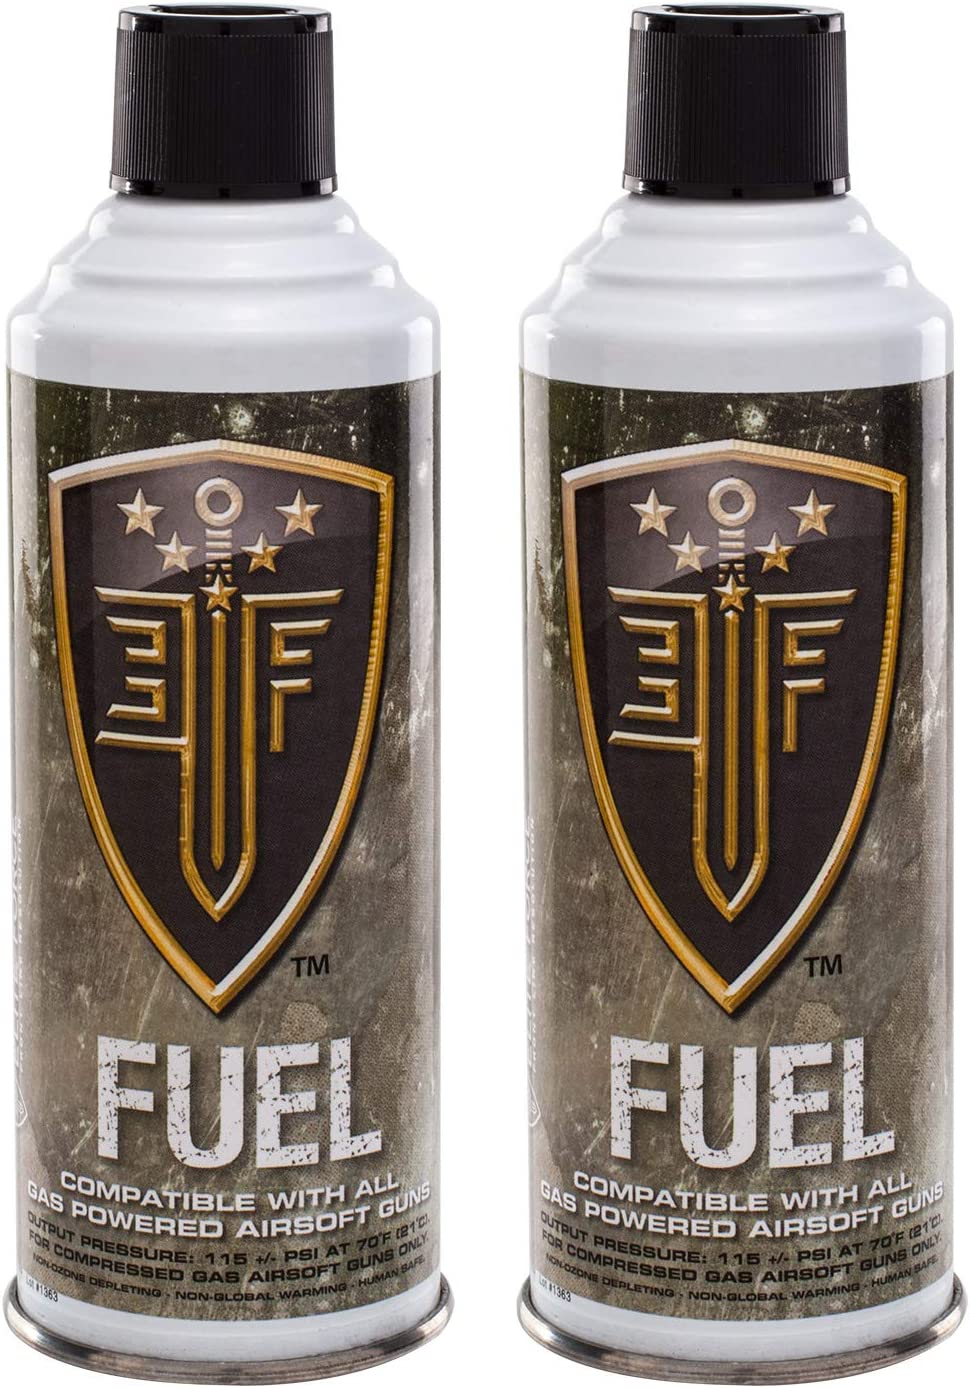 Elite Force depot Fuel Green Gas for 1 year warranty Guns 2 of Pack Airsoft